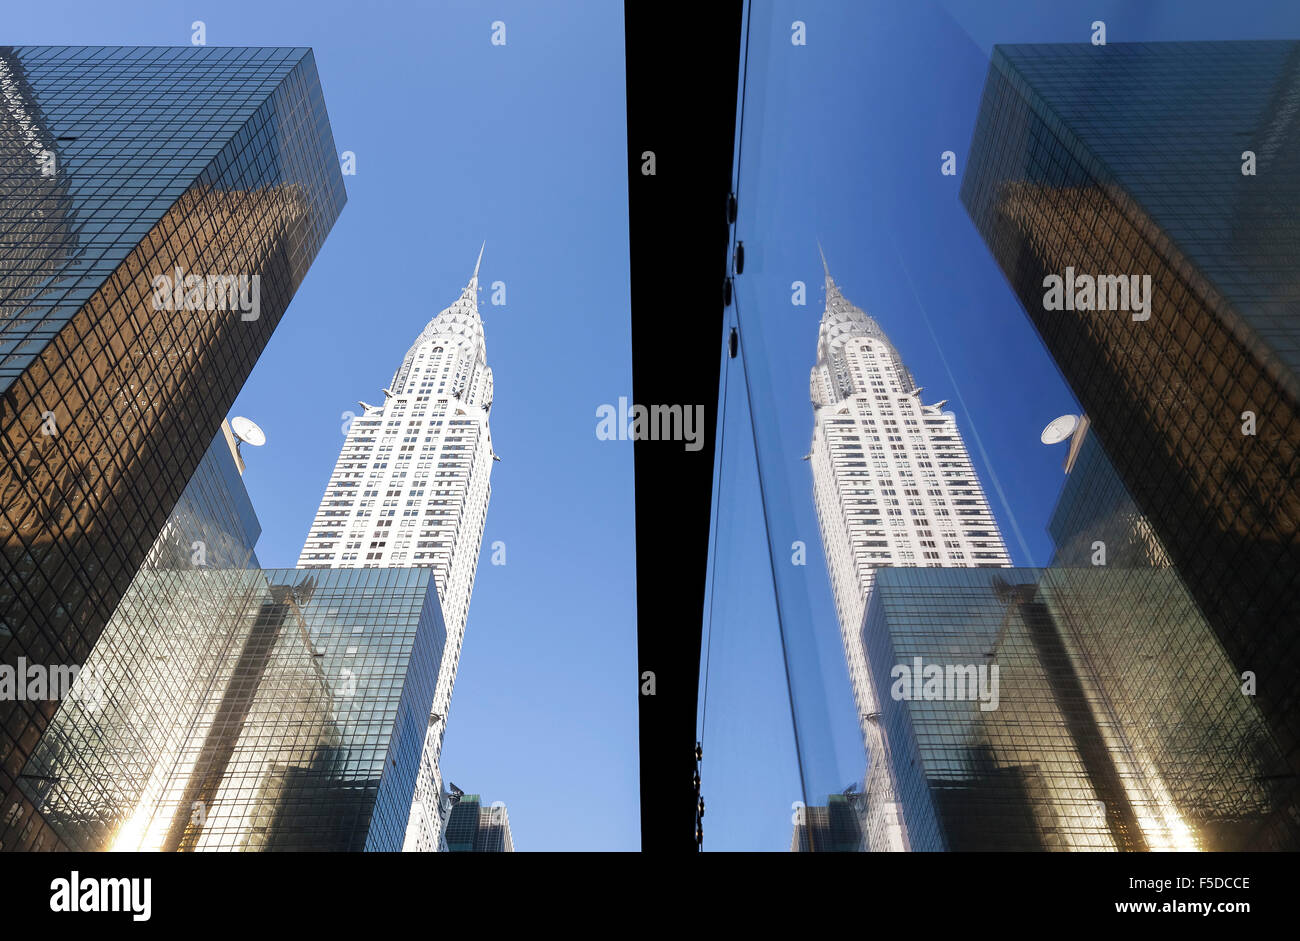 Manhattan skyscrapers reflected in windows at sunset, NYC, USA. - Stock Image